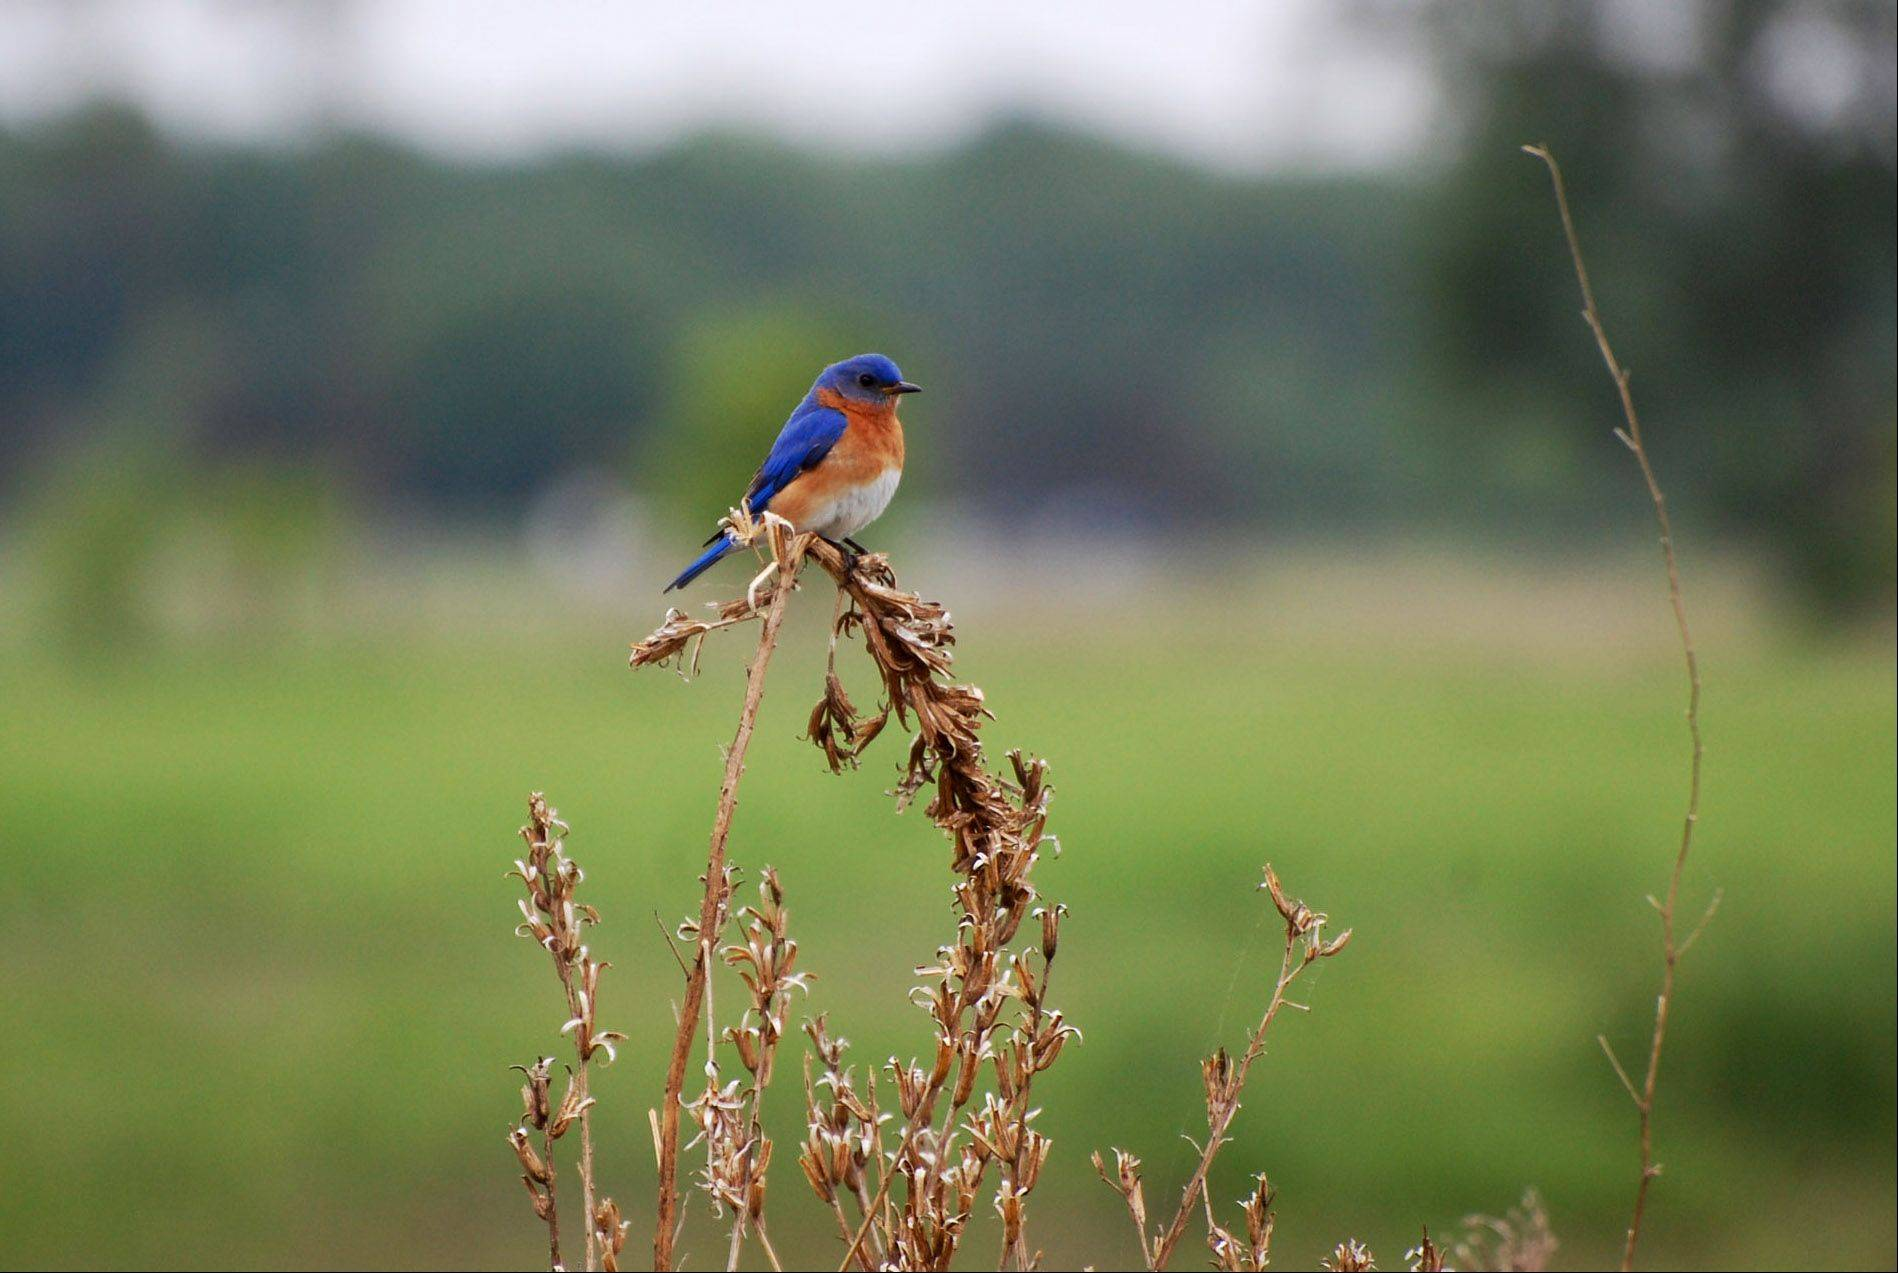 A blue bird sits on a dry plant at McHenry Glacial Park in Ringwood.